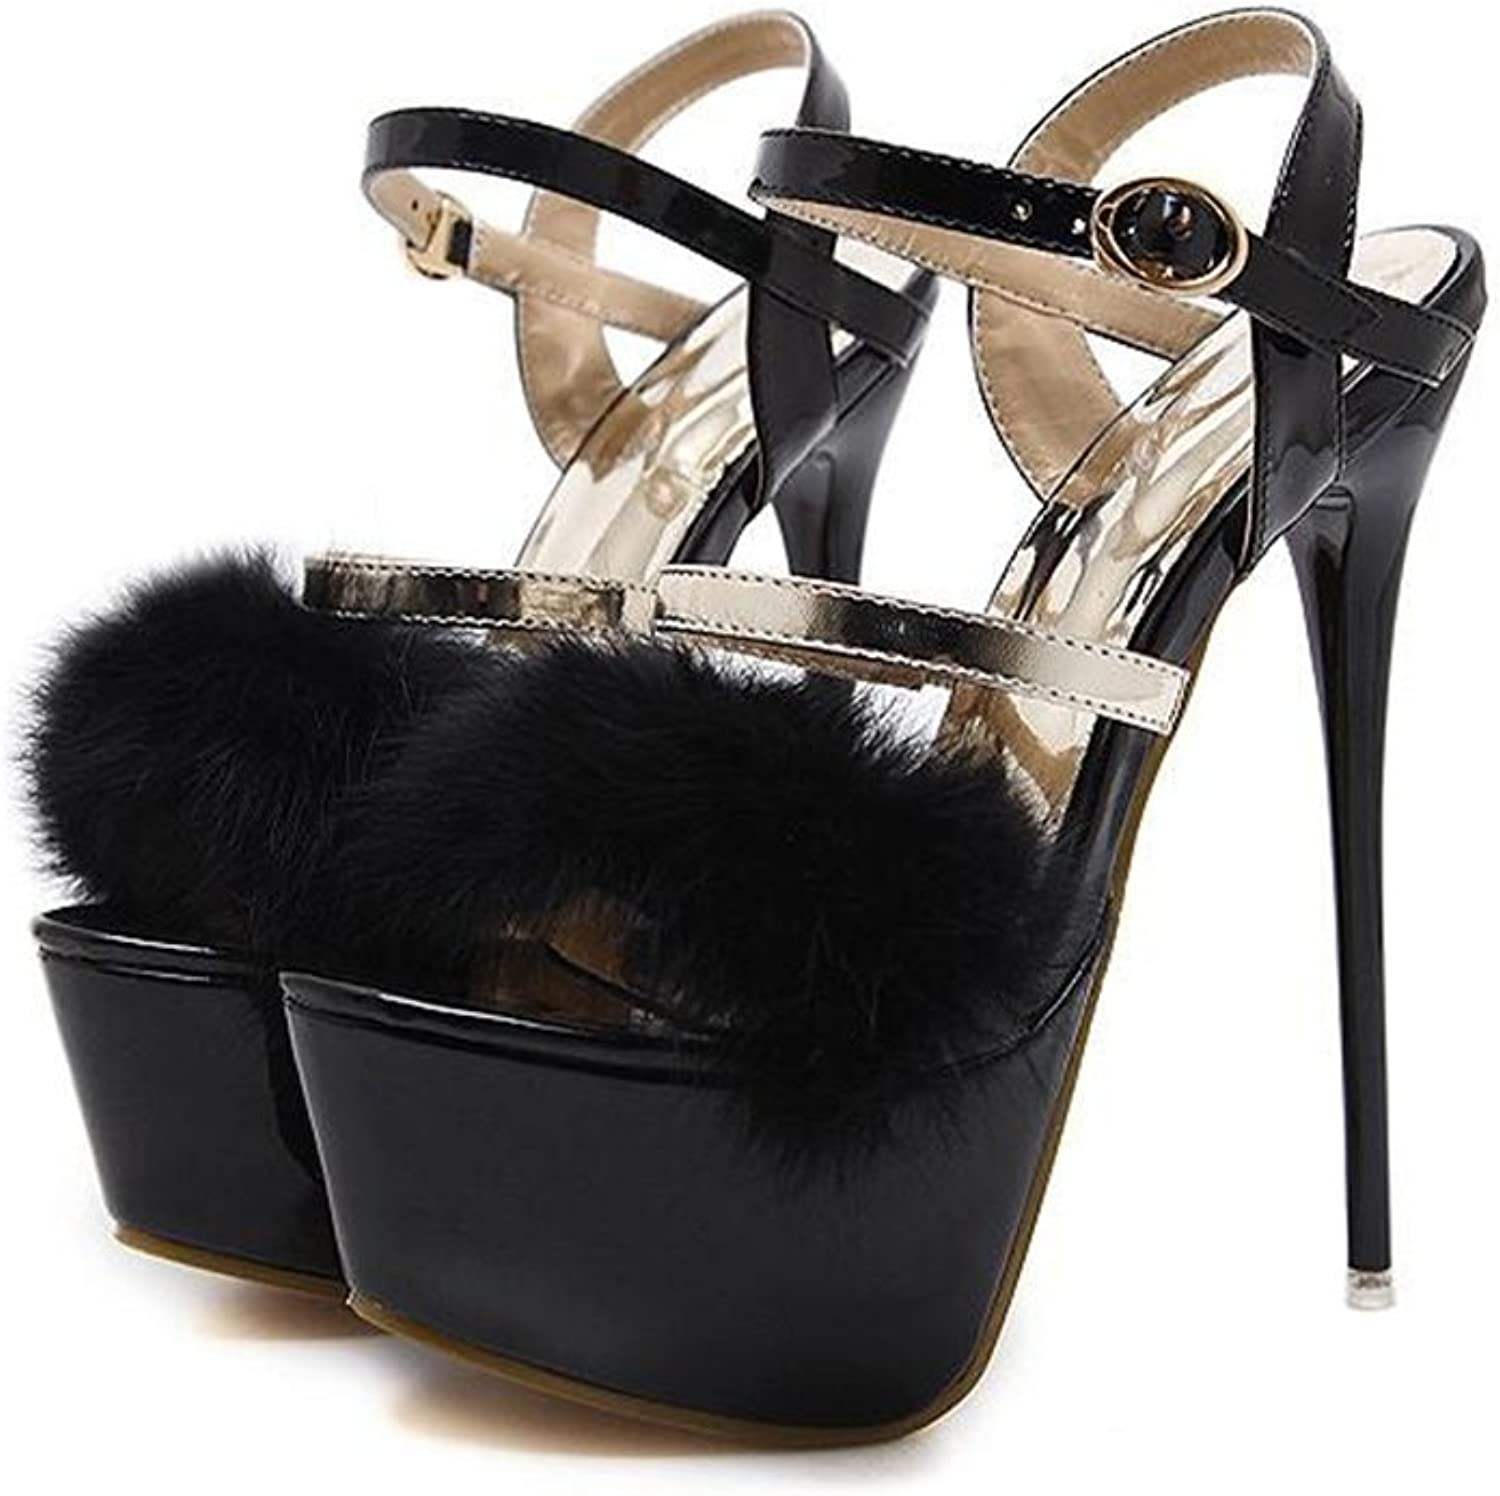 Eleganceoo Women's Open Toe Strappy Platform Ankle Strap Feather Stiletto High Heel Sandal-(-Womens- Comfortable shoes